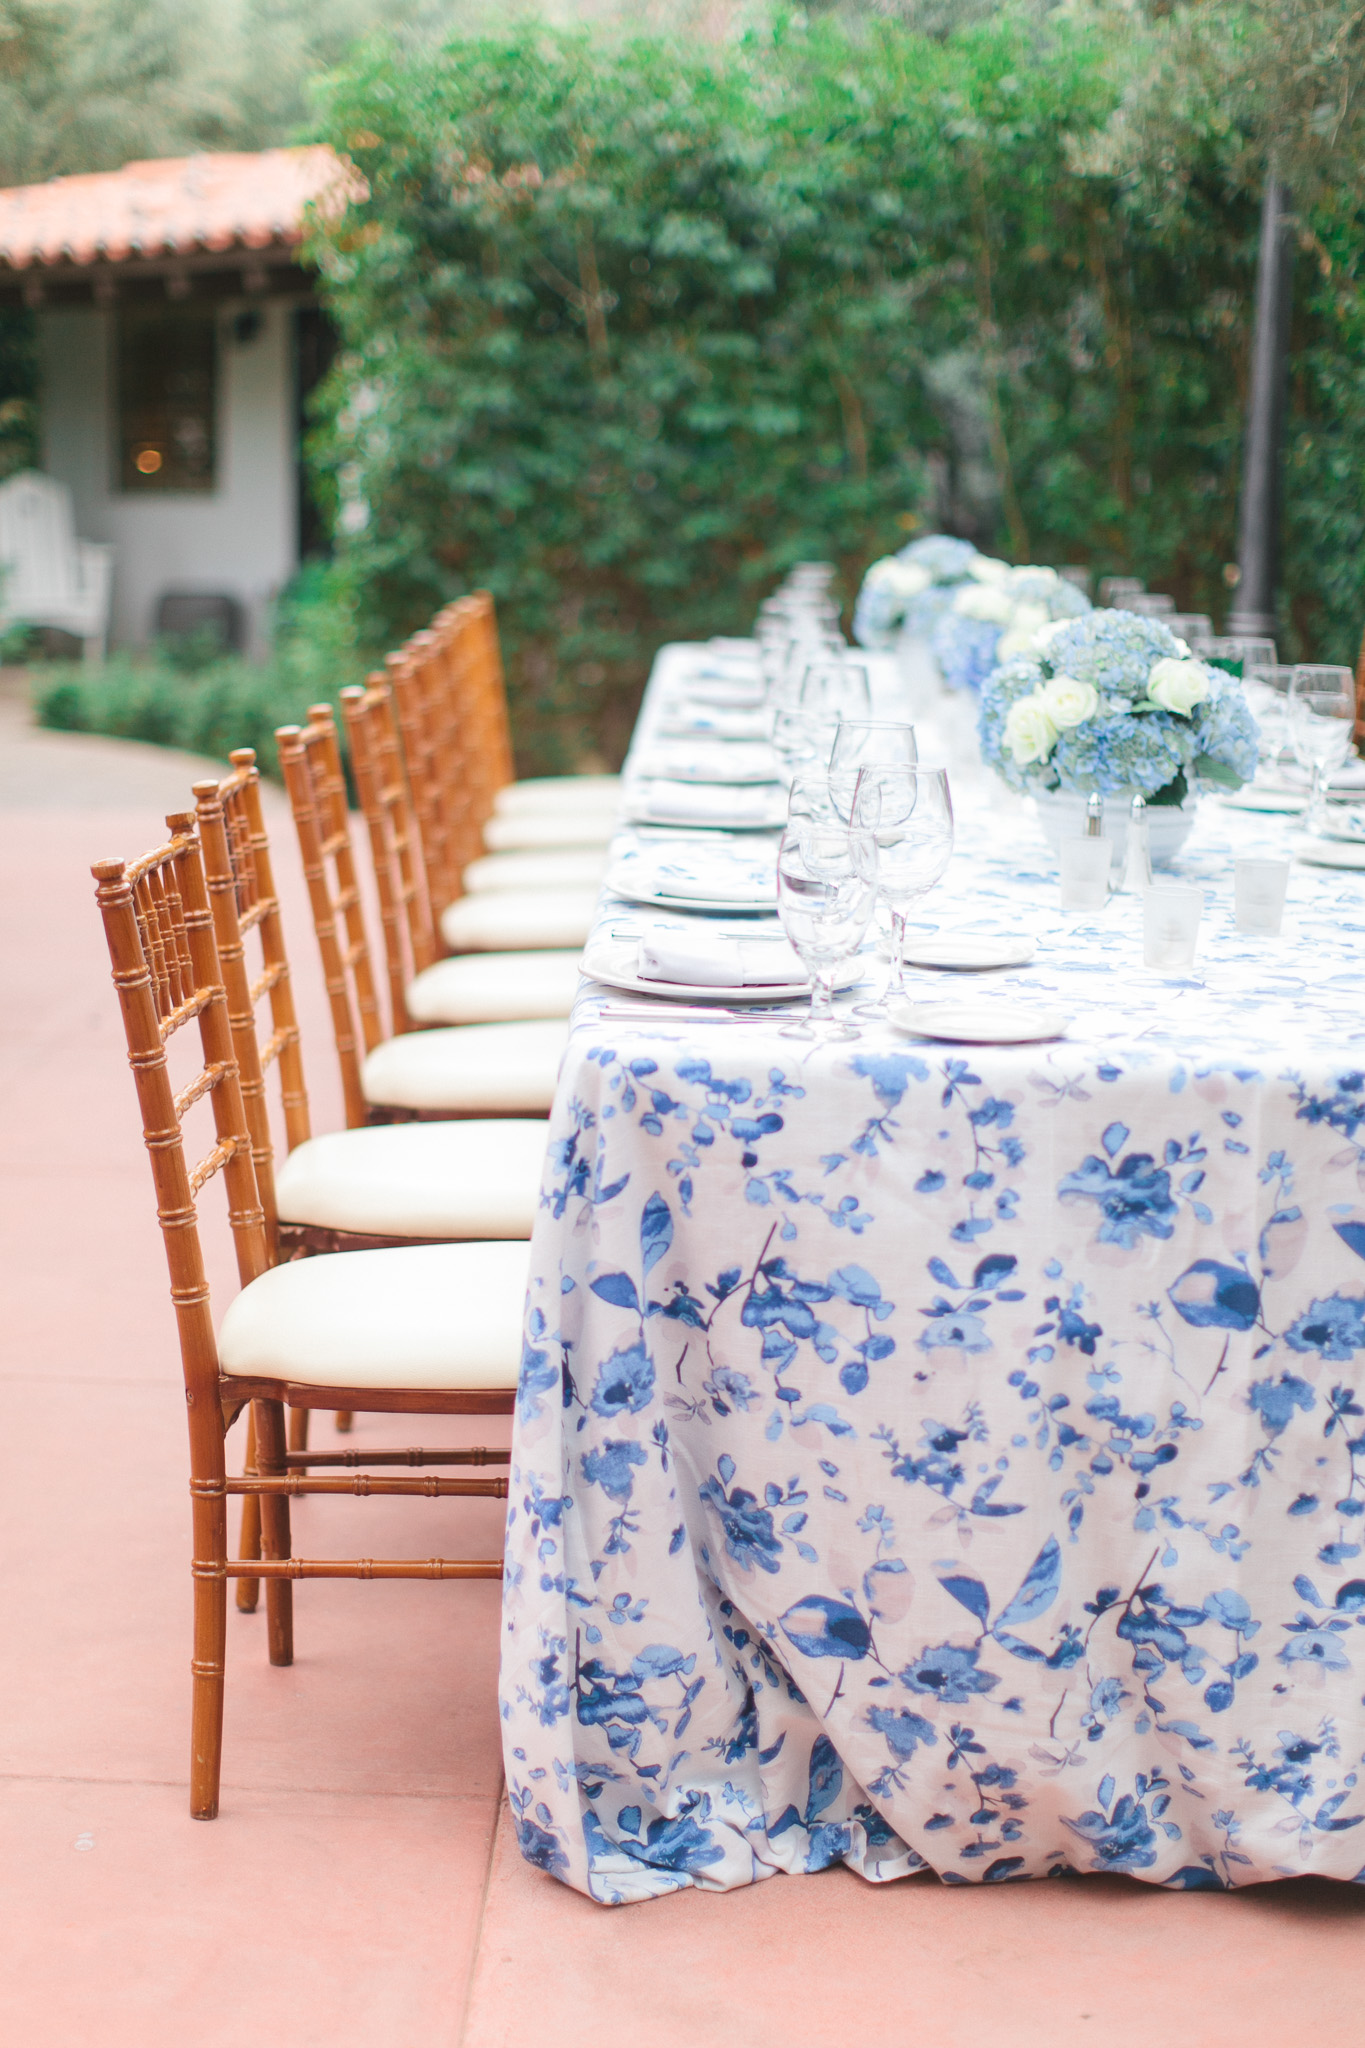 ElChorro_La Tavola Harper Linen_Anthony-and-stork_Table-14.jpg